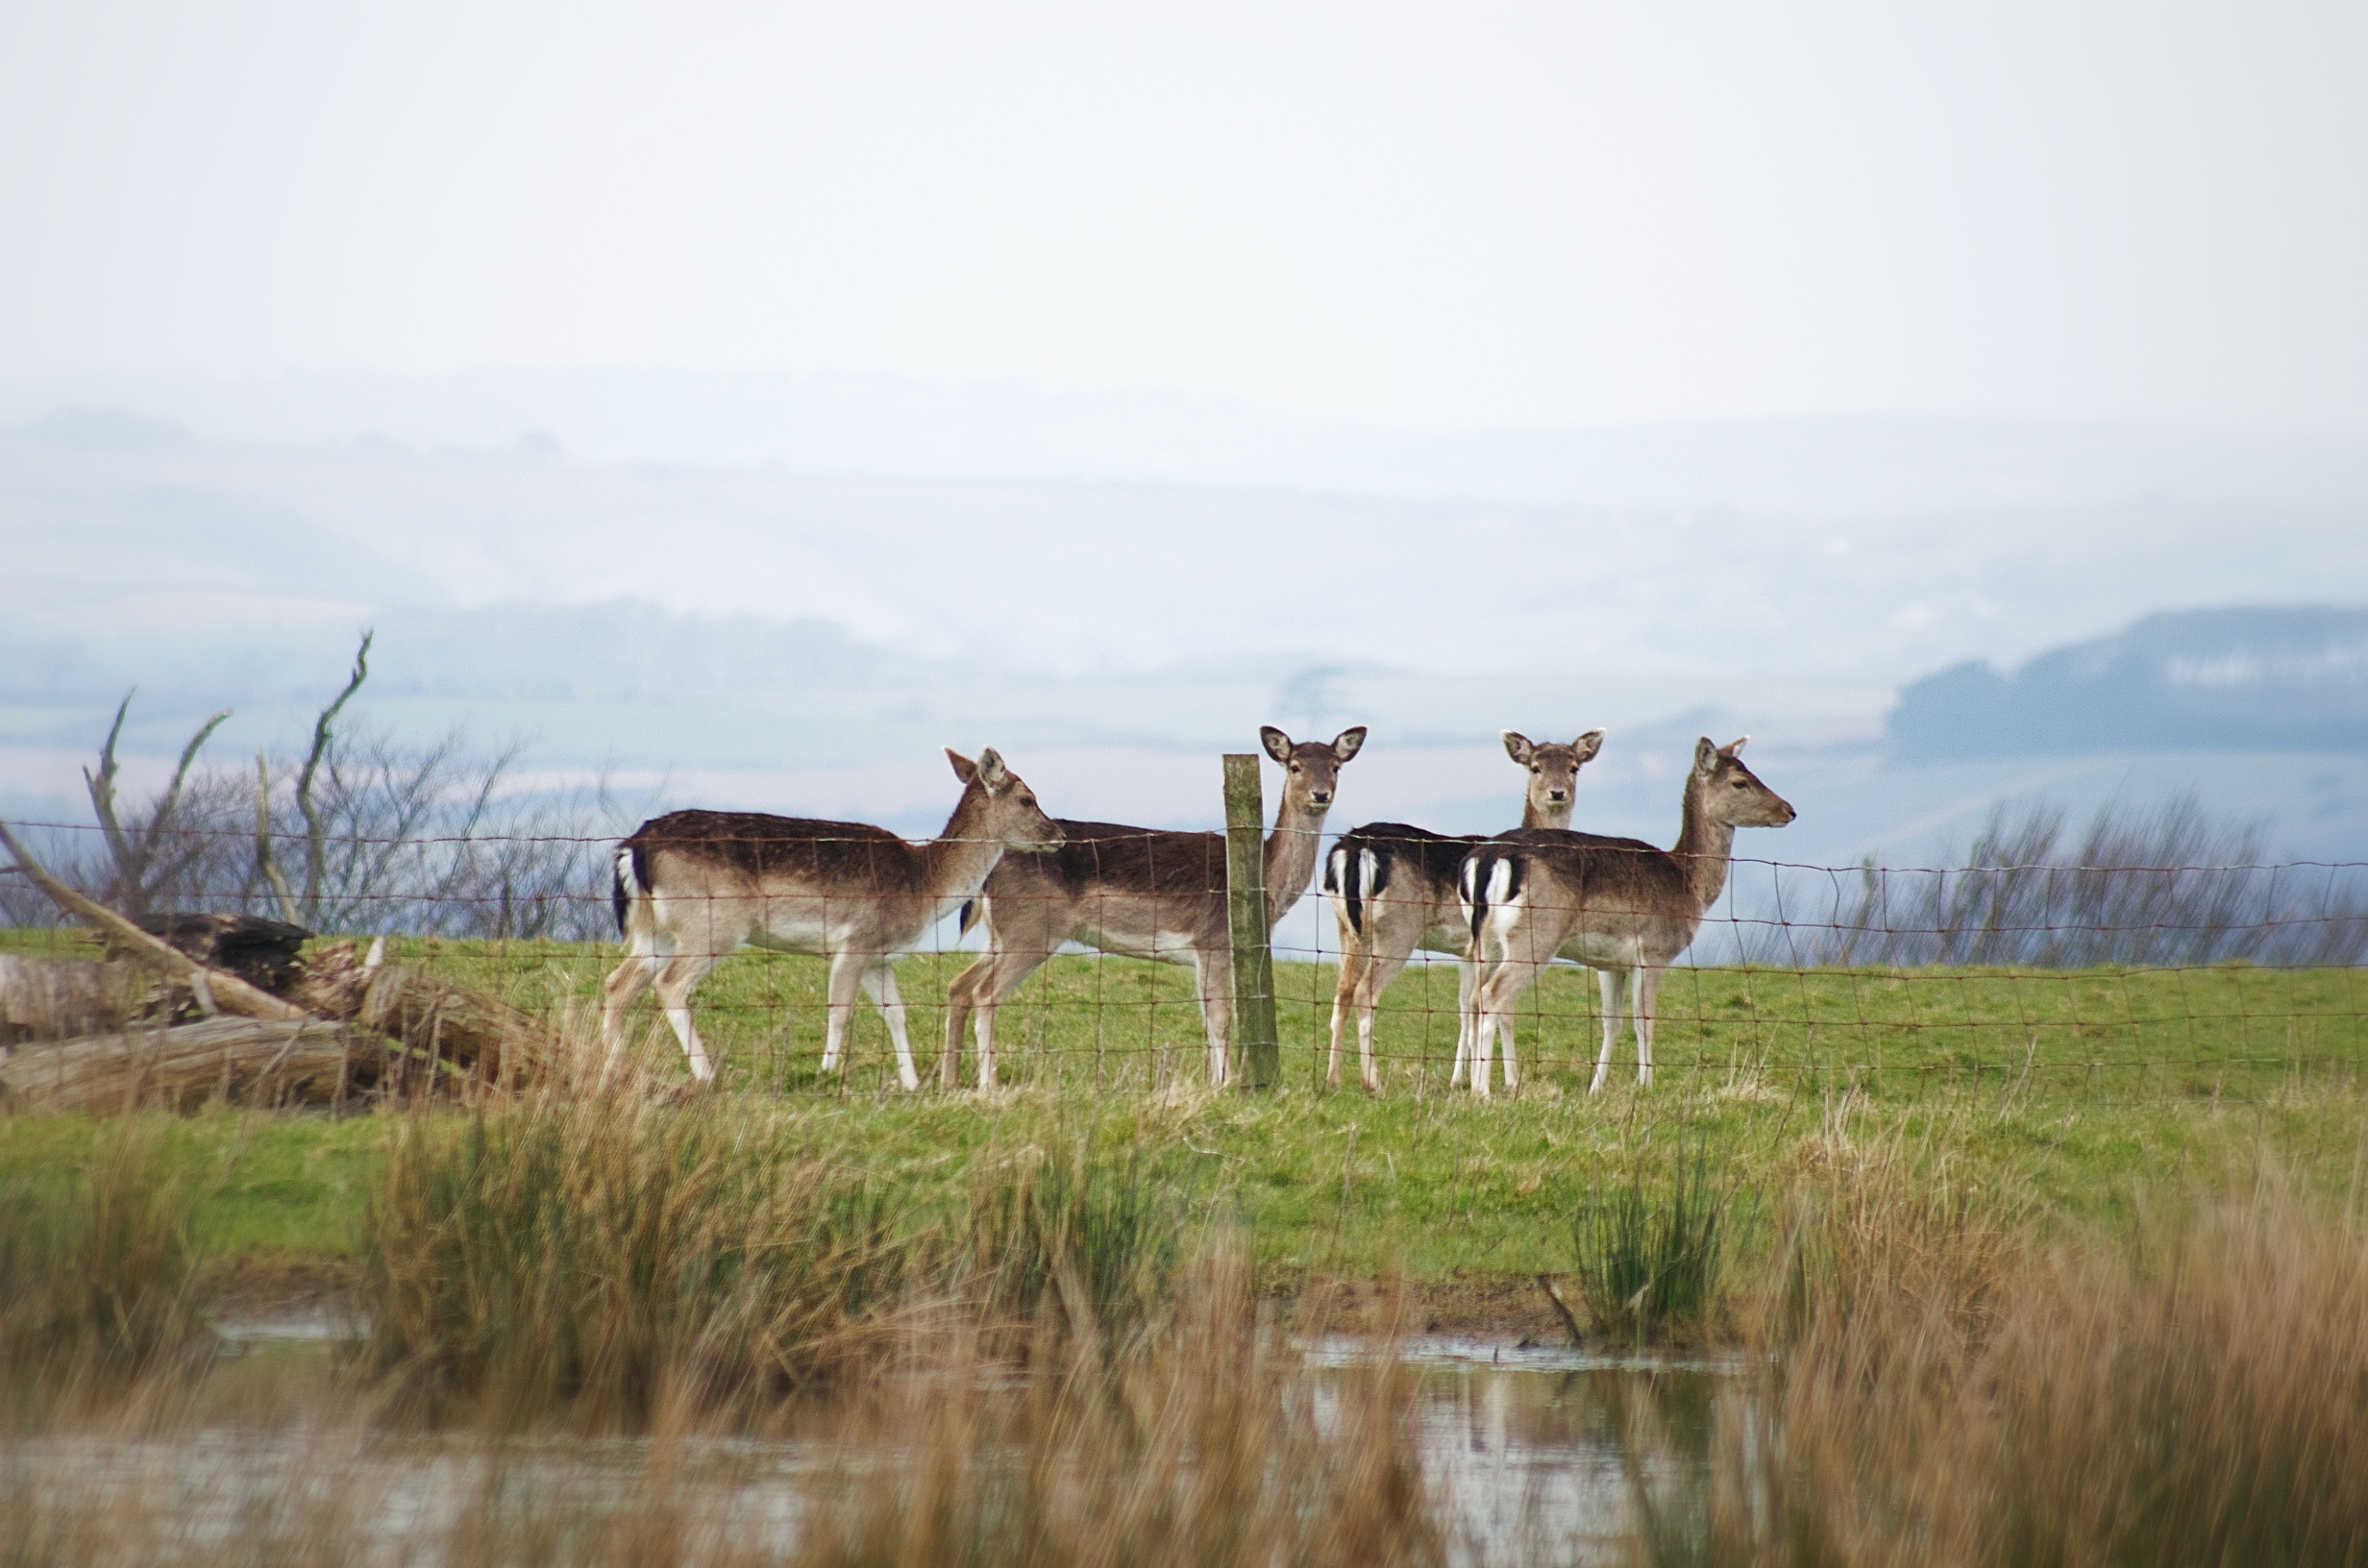 In 1515 Sir Piers Edgcumbe was given permission by King Henry VIII to empark deer. Their descendents roam freely on the Peninsula to this day.